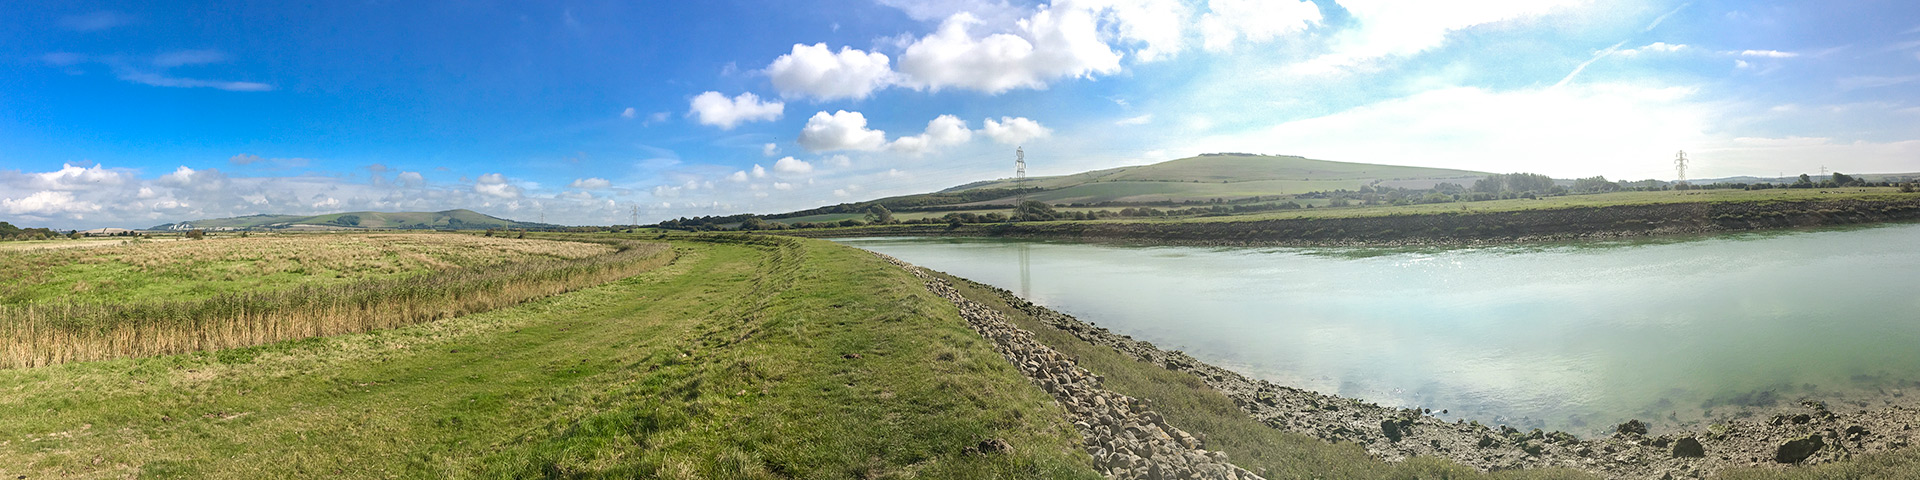 Panorama from the Southease and the River Ouse walk in South Downs, England